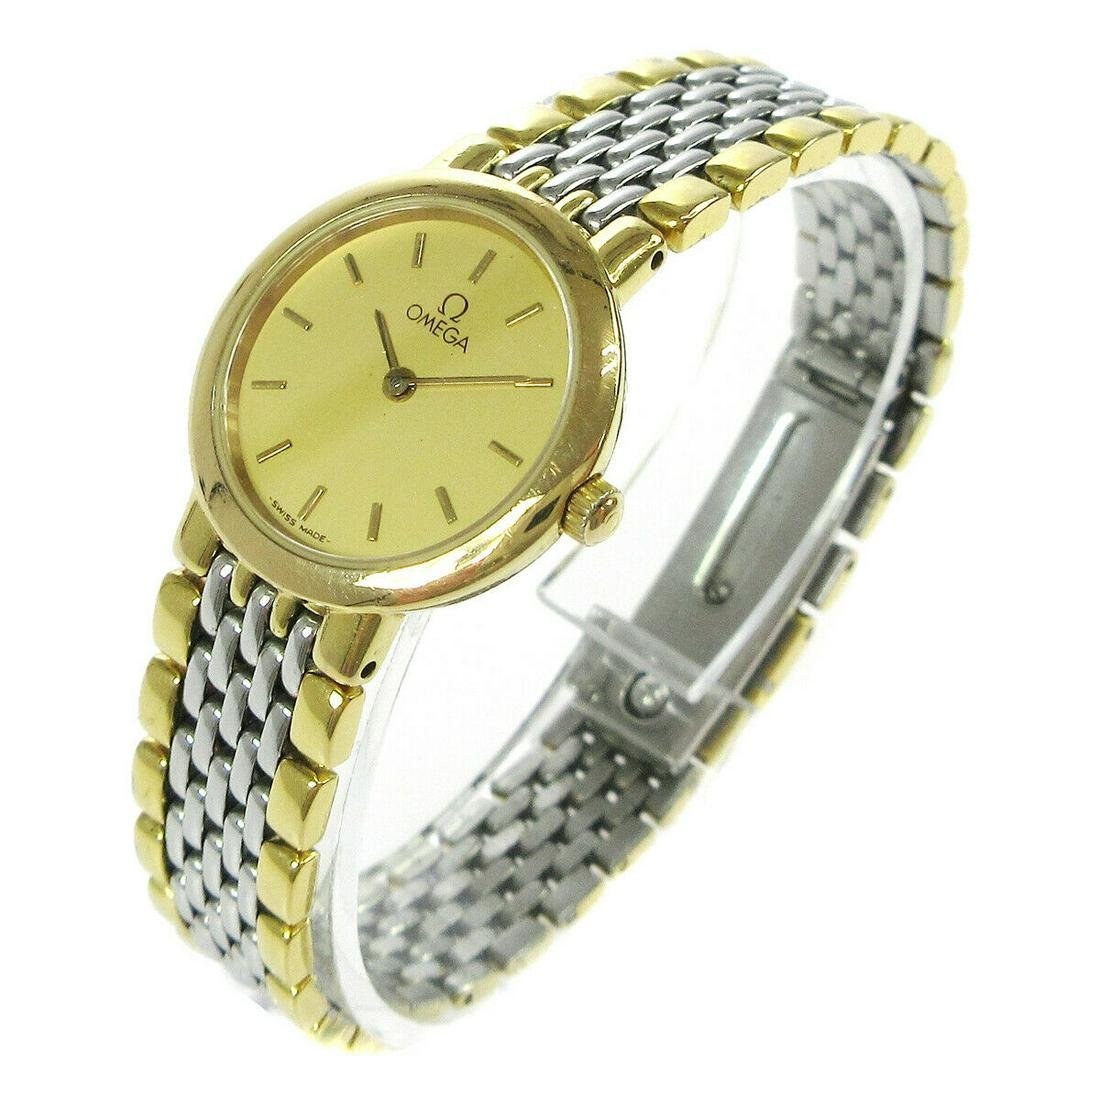 Authentic OMEGA Stainless Steel Casual